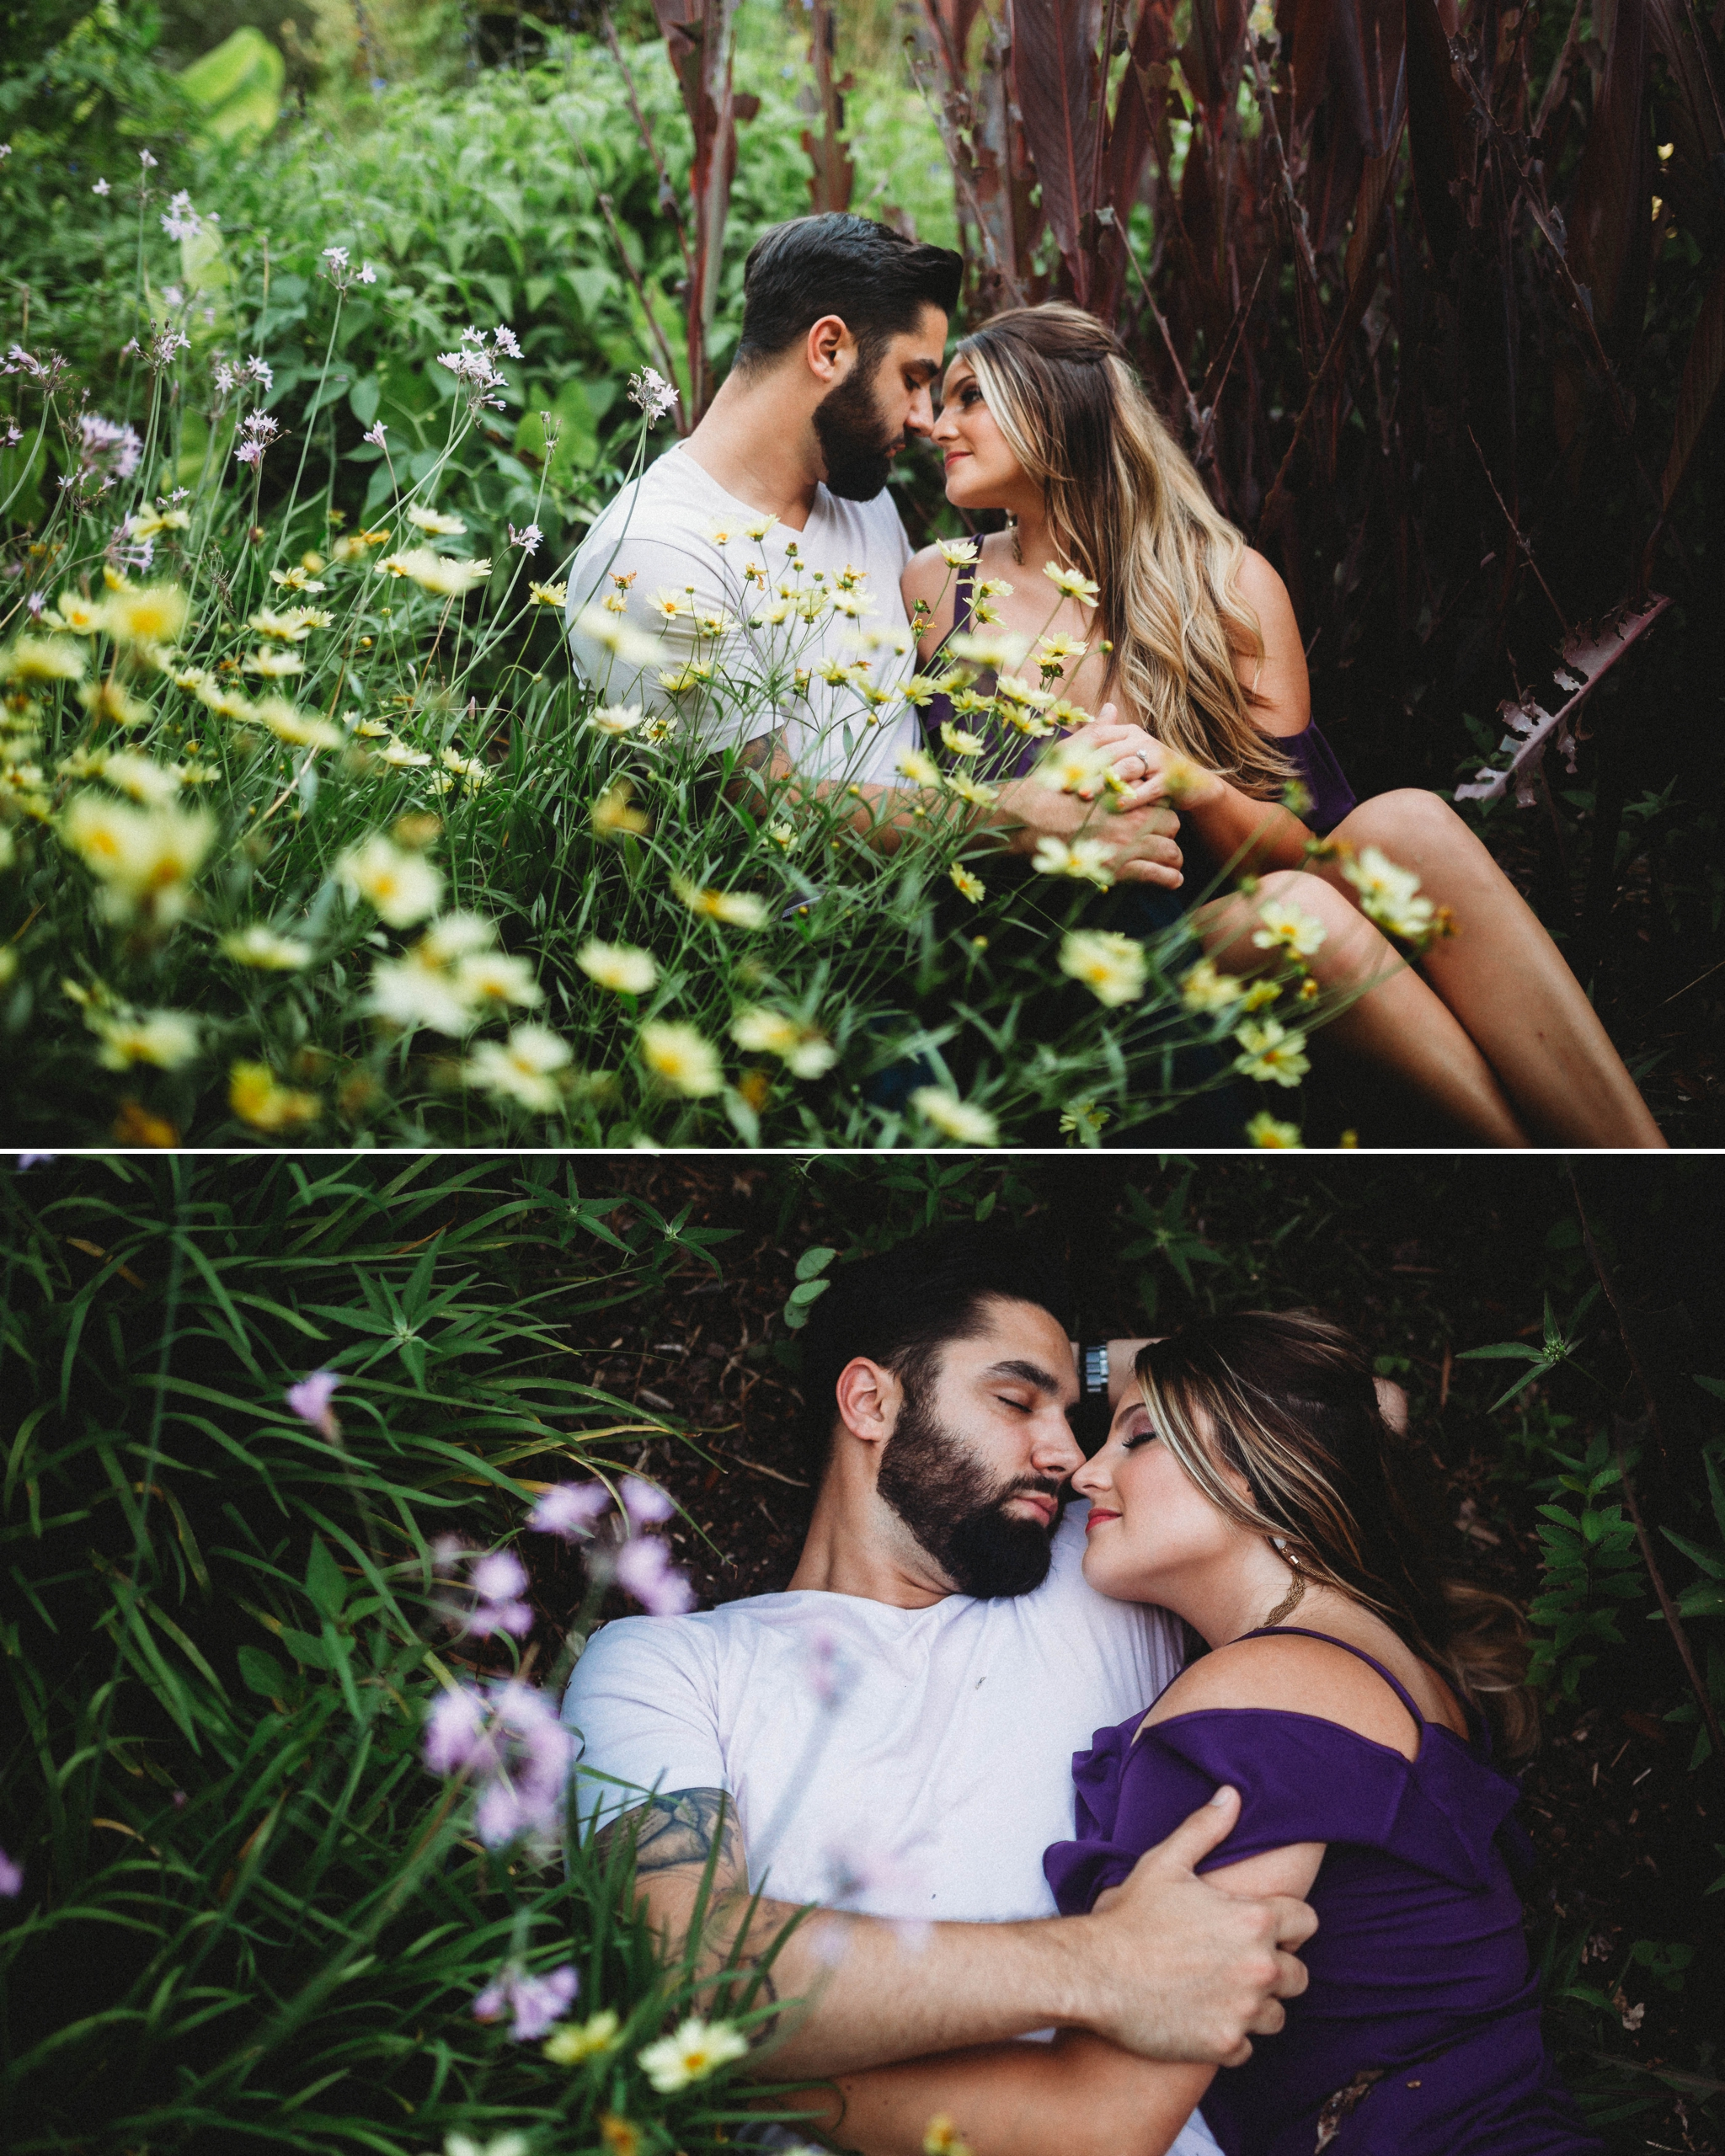 Brittany + Douglas - Engagement Session at The Arboretum: New Hanover - Wilmington, NC Wedding Photographer